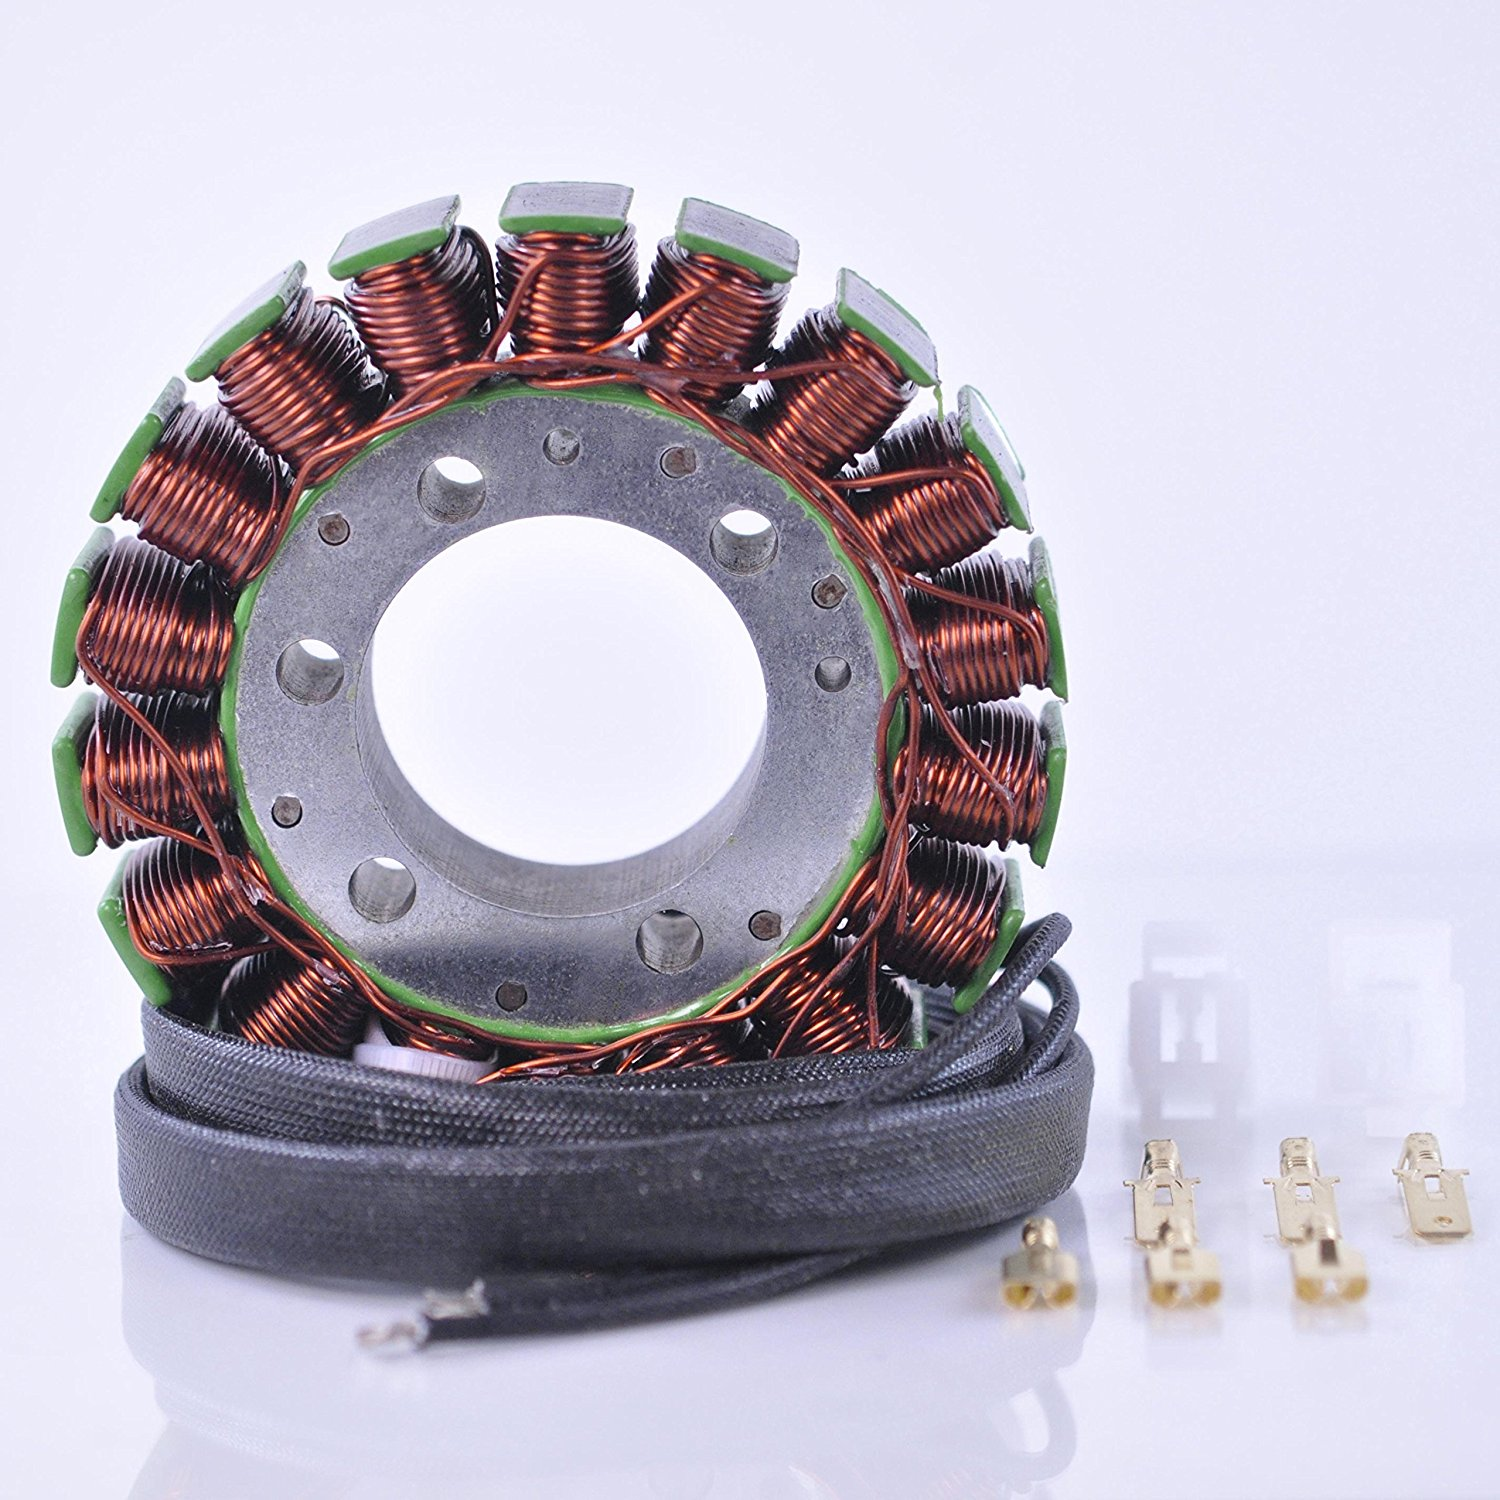 Stator for Motorcycles Yamaha Road Star 1600 / 1700 cc 1999-2005